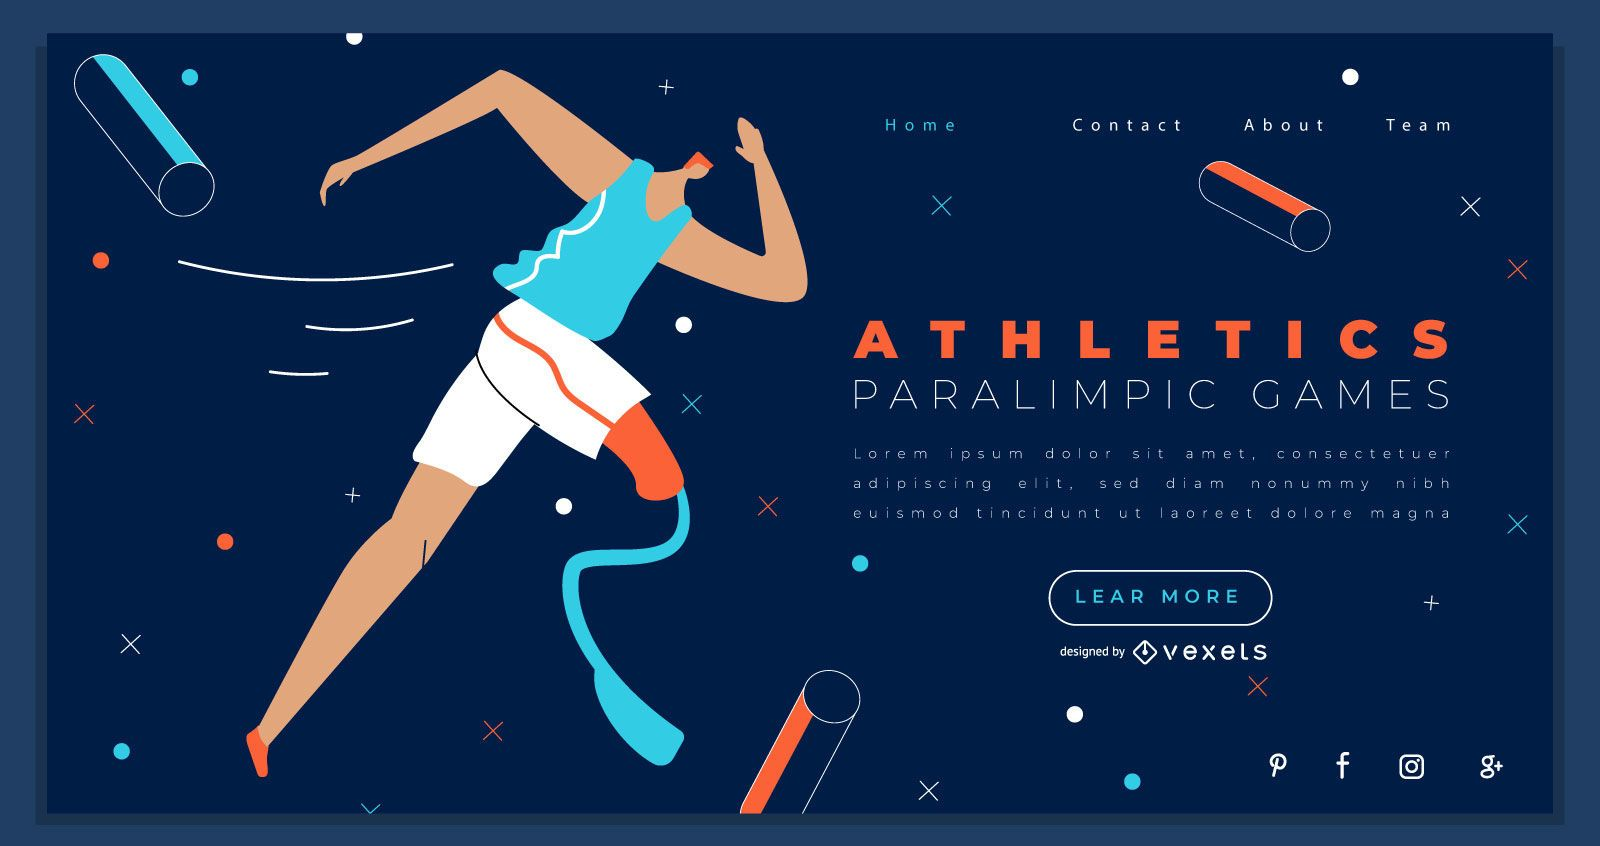 Athletics Paralympic Games Landing Page Design